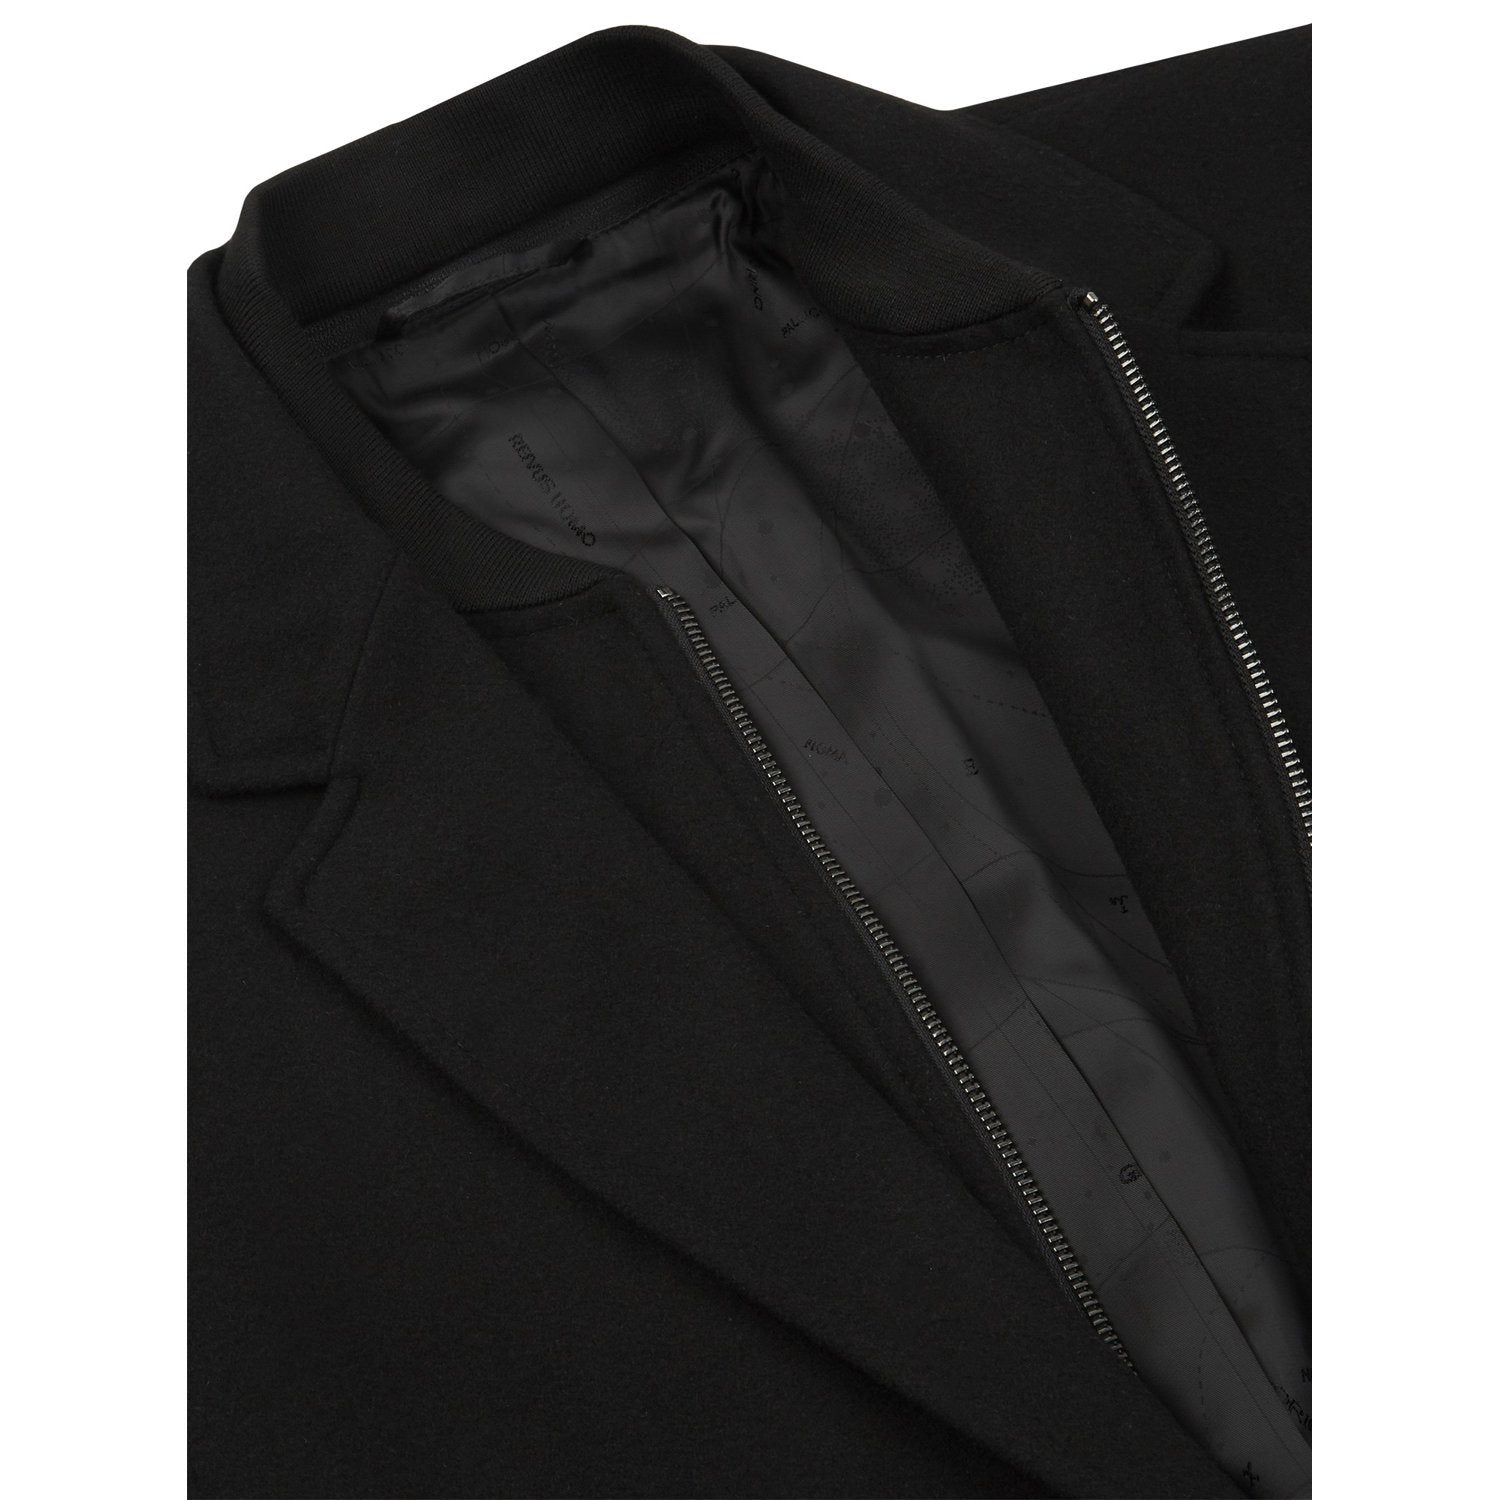 Black Tailored Coat - Leonard Silver